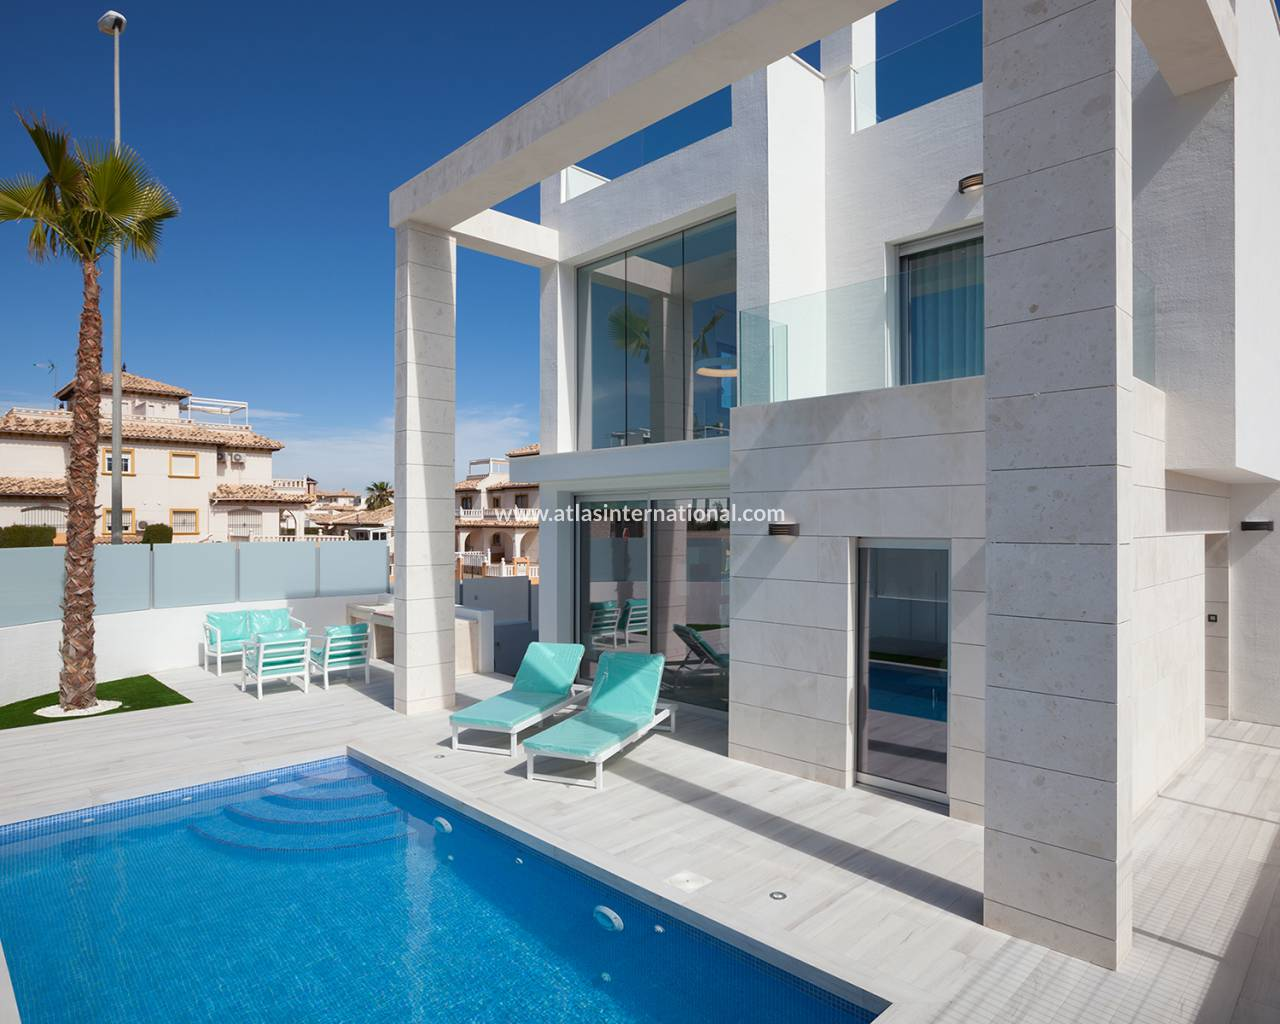 Detached Villa - New Build - Orihuela costa - Orihuela costa